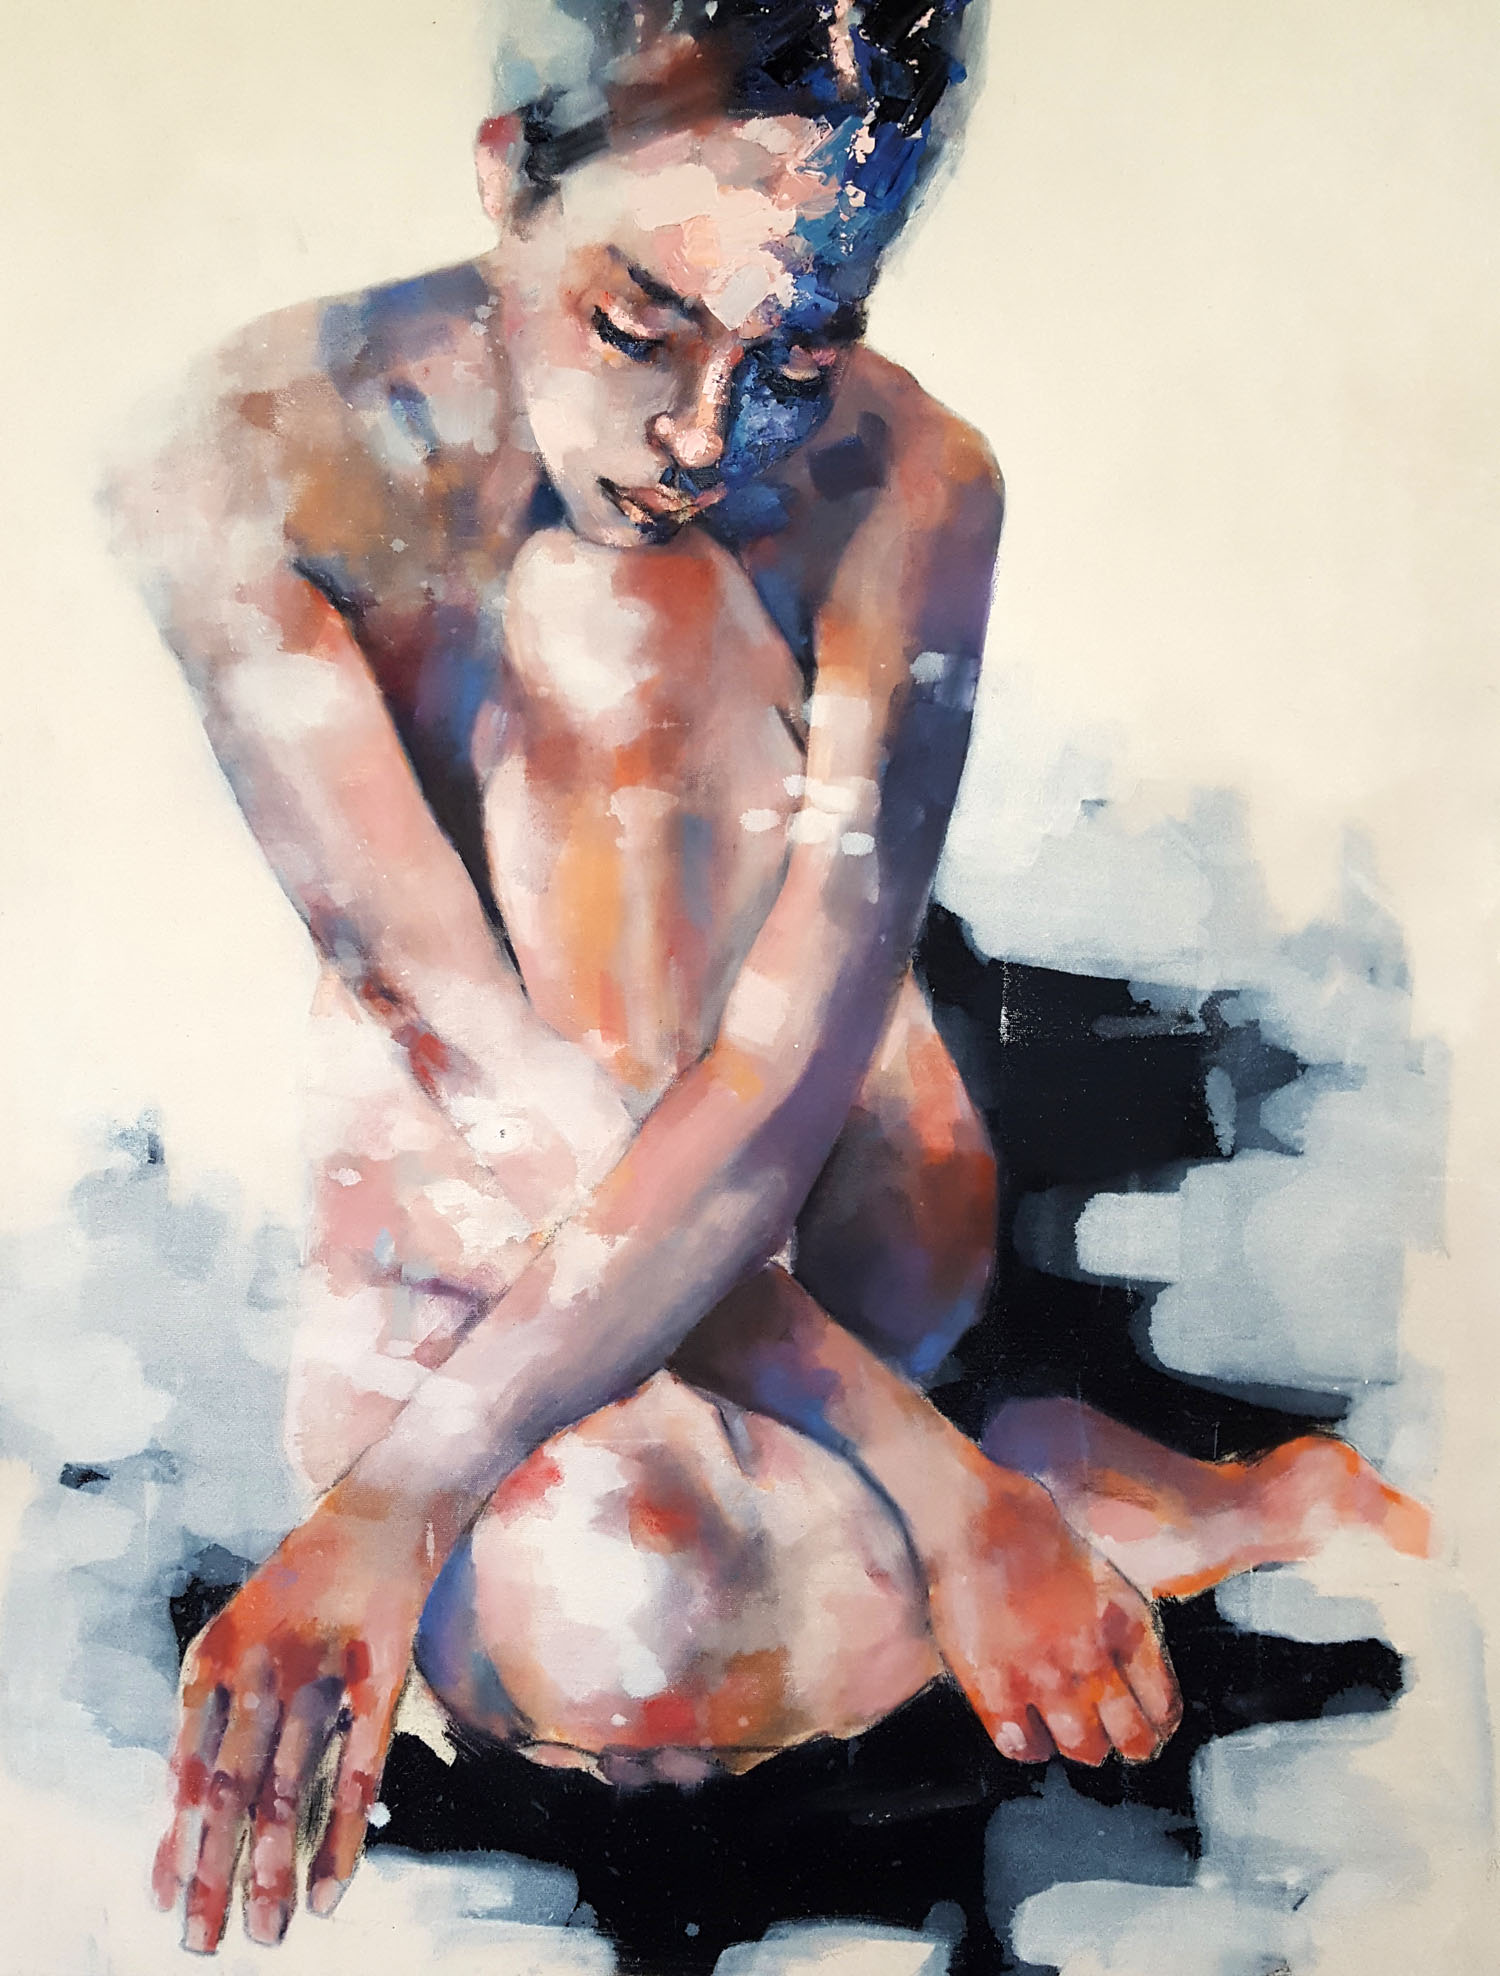 3-15-18 figure study, oil on canvas, 90x70cm